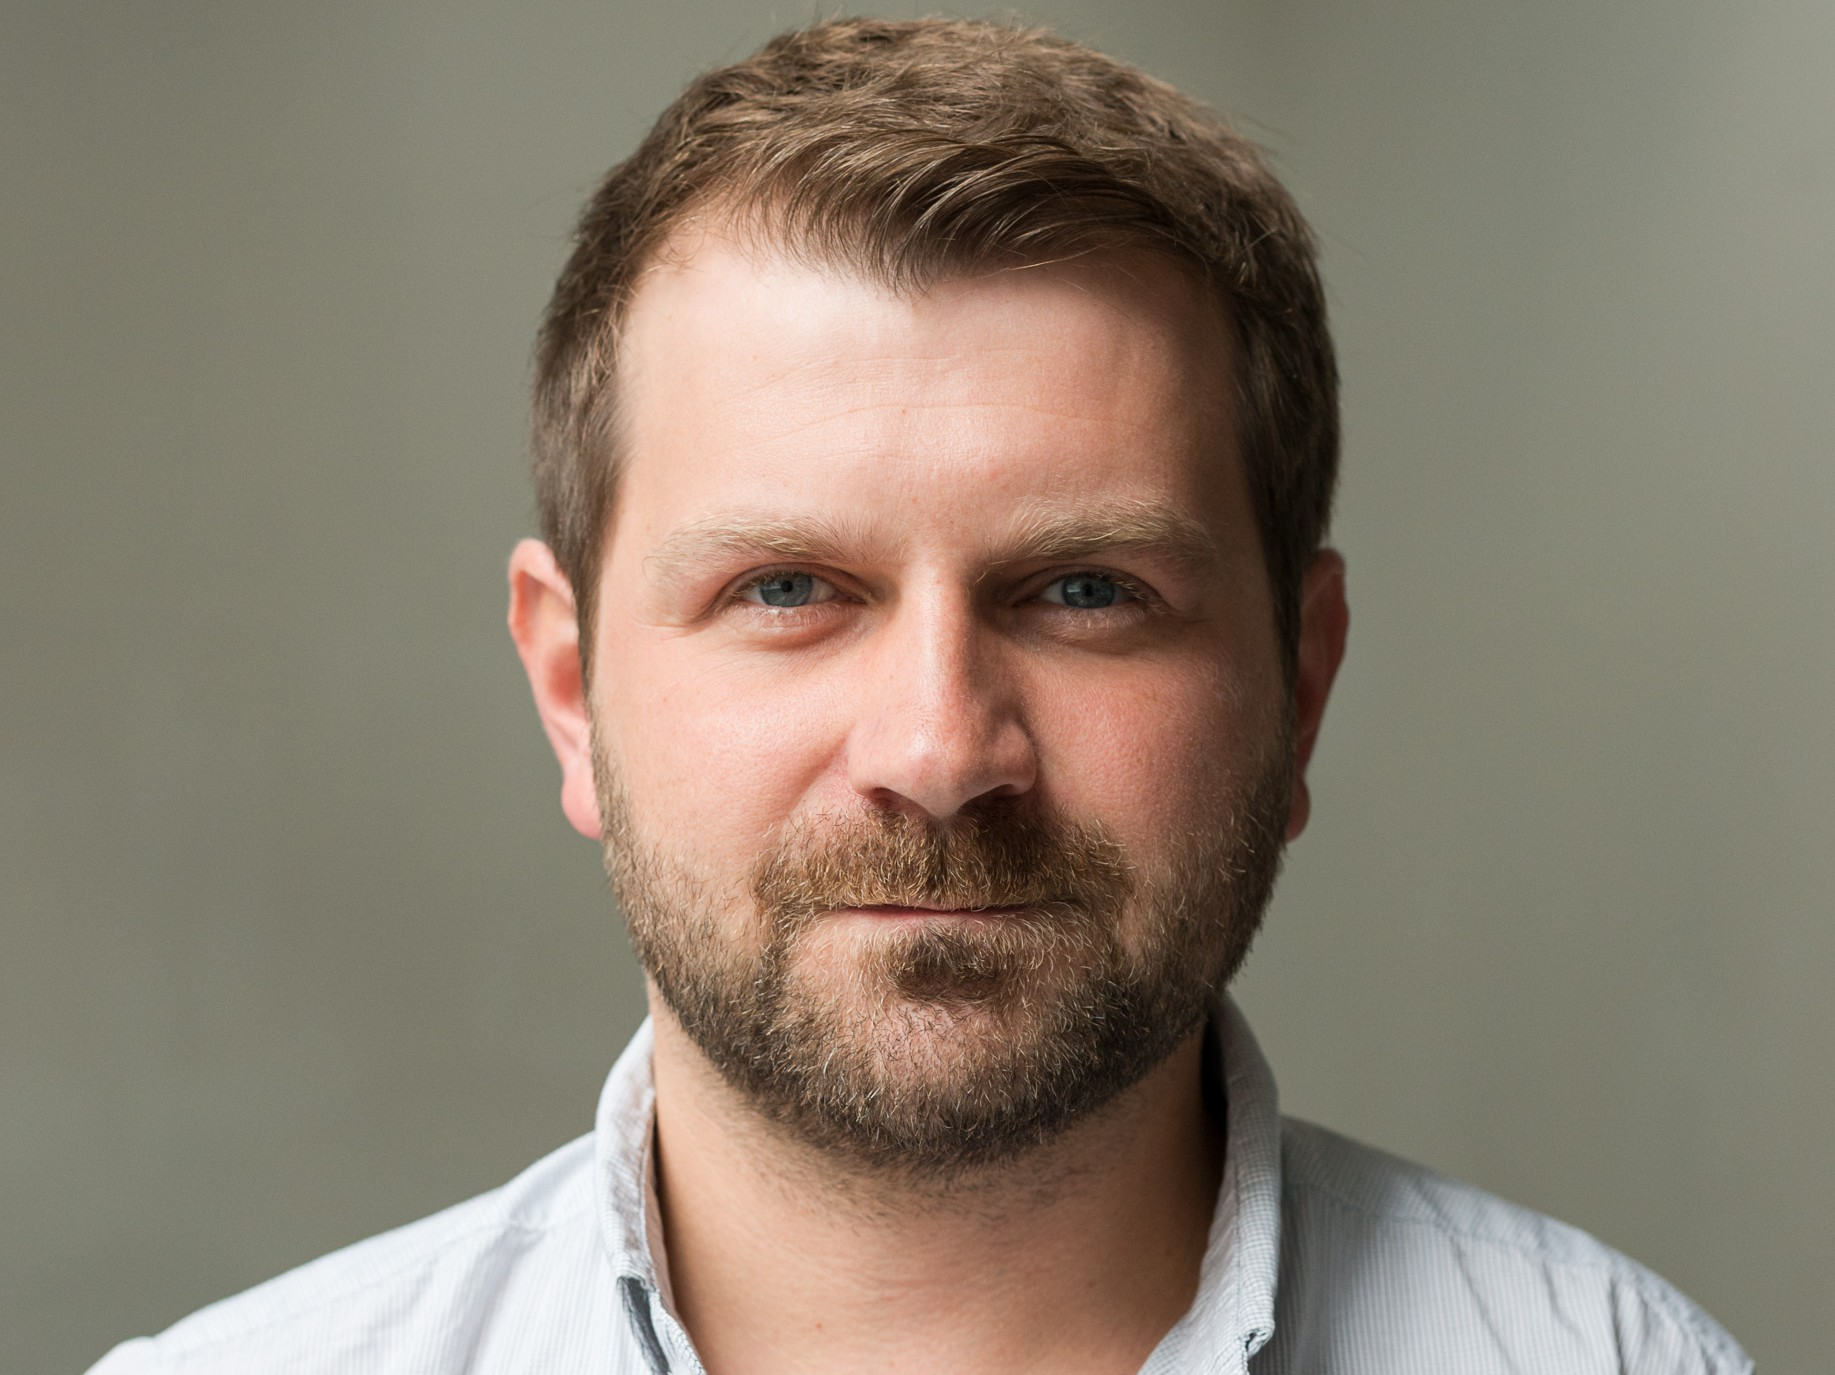 Patrick Burkert, co-founder and CMO of Go-PopUp